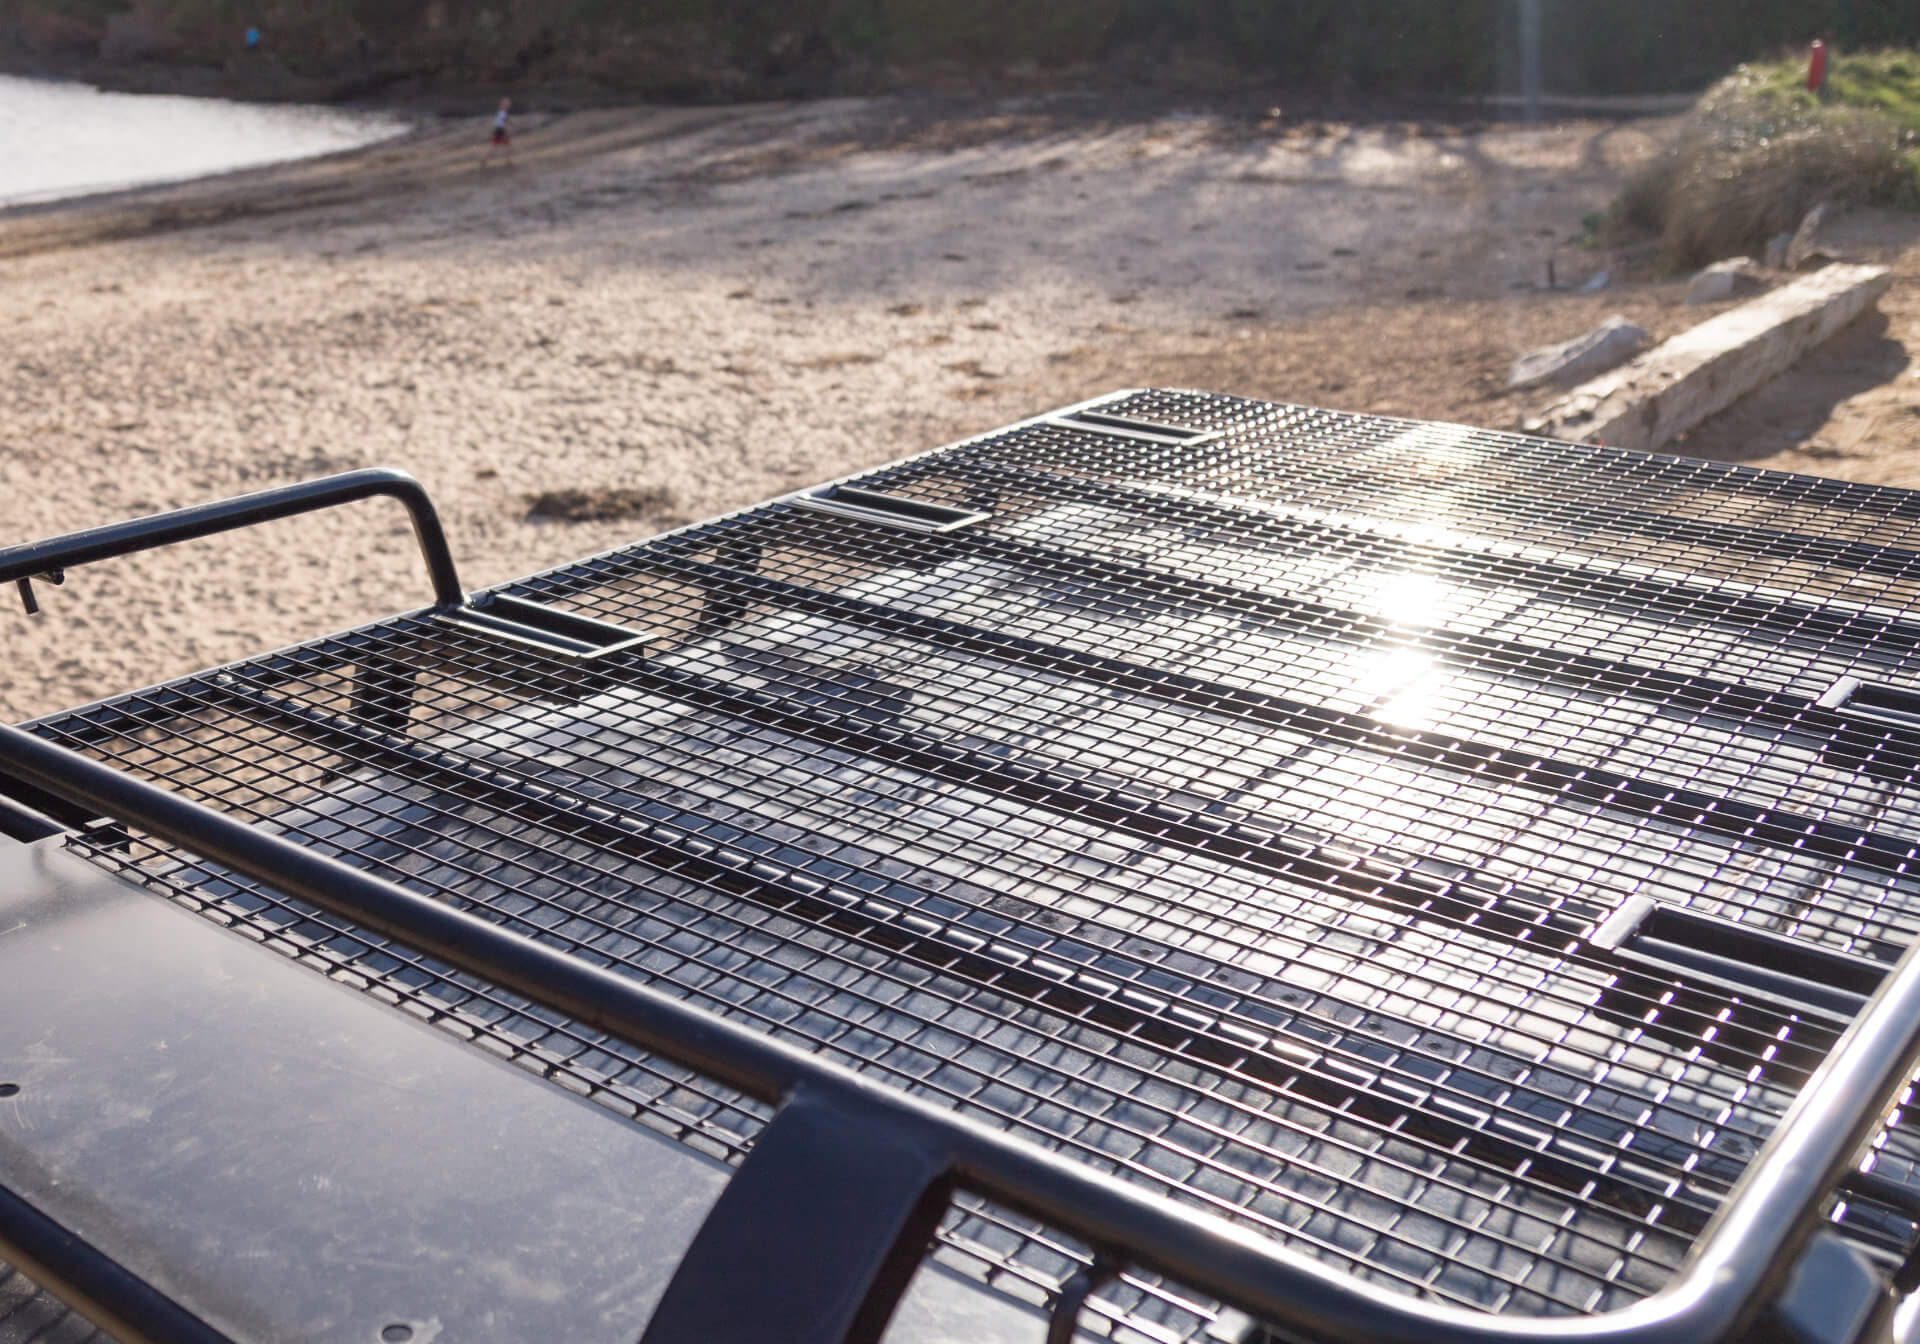 Direct4x4 Accessories UK | Expedition Roof Racks